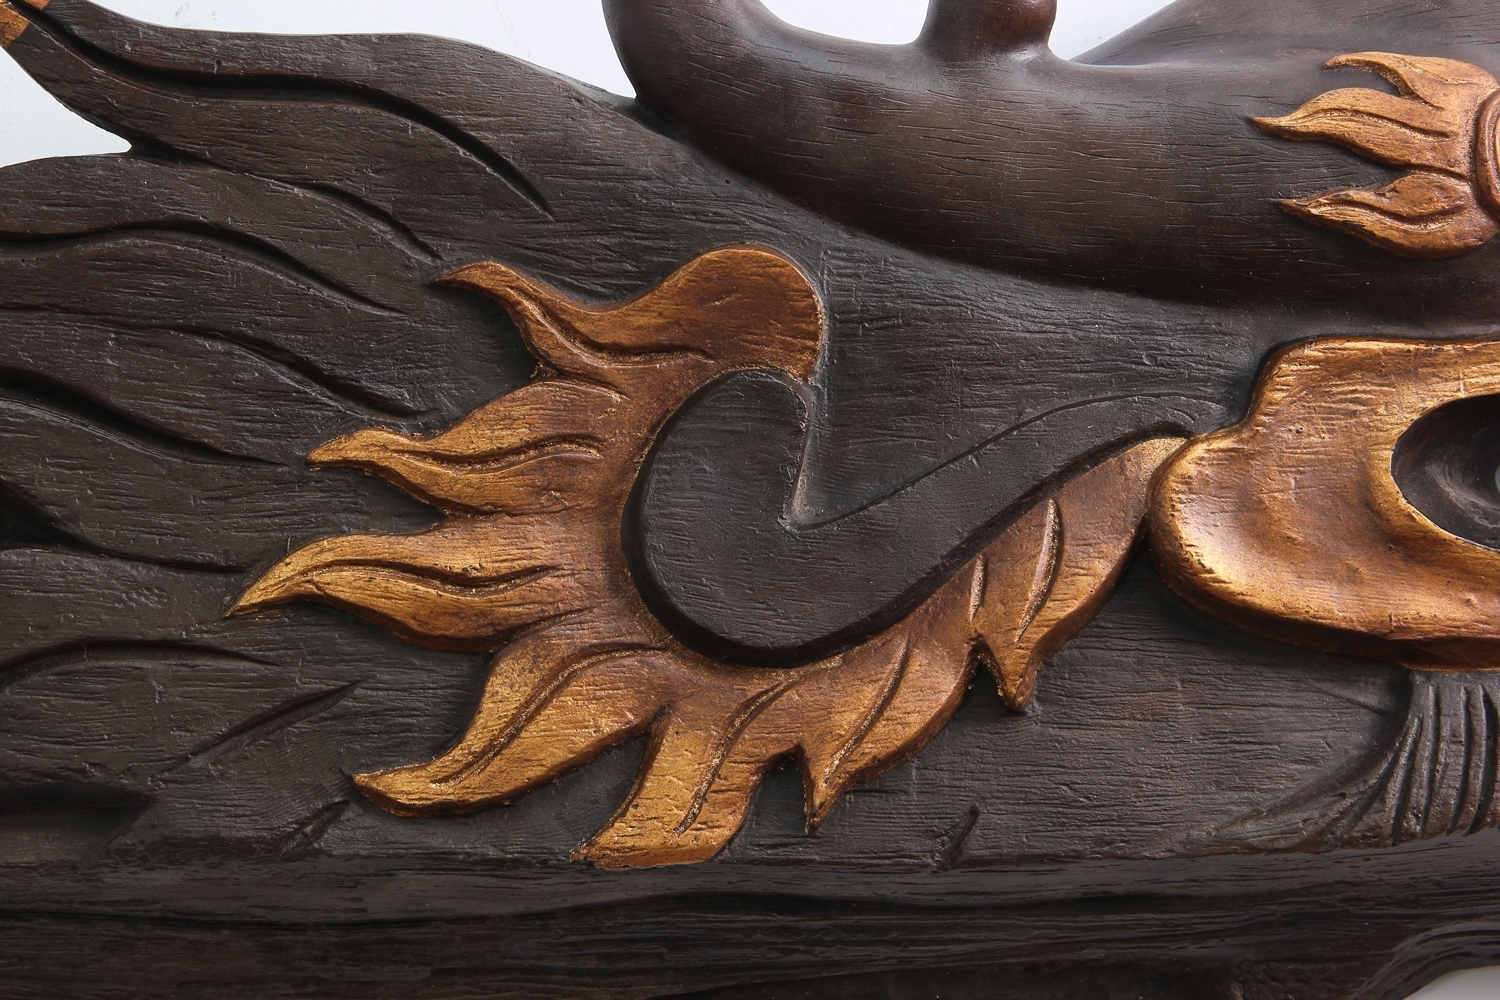 Dragon Wall Art / Wall Sculpture | Forwood Design Inside Recent Dragon Wall Art (View 9 of 20)